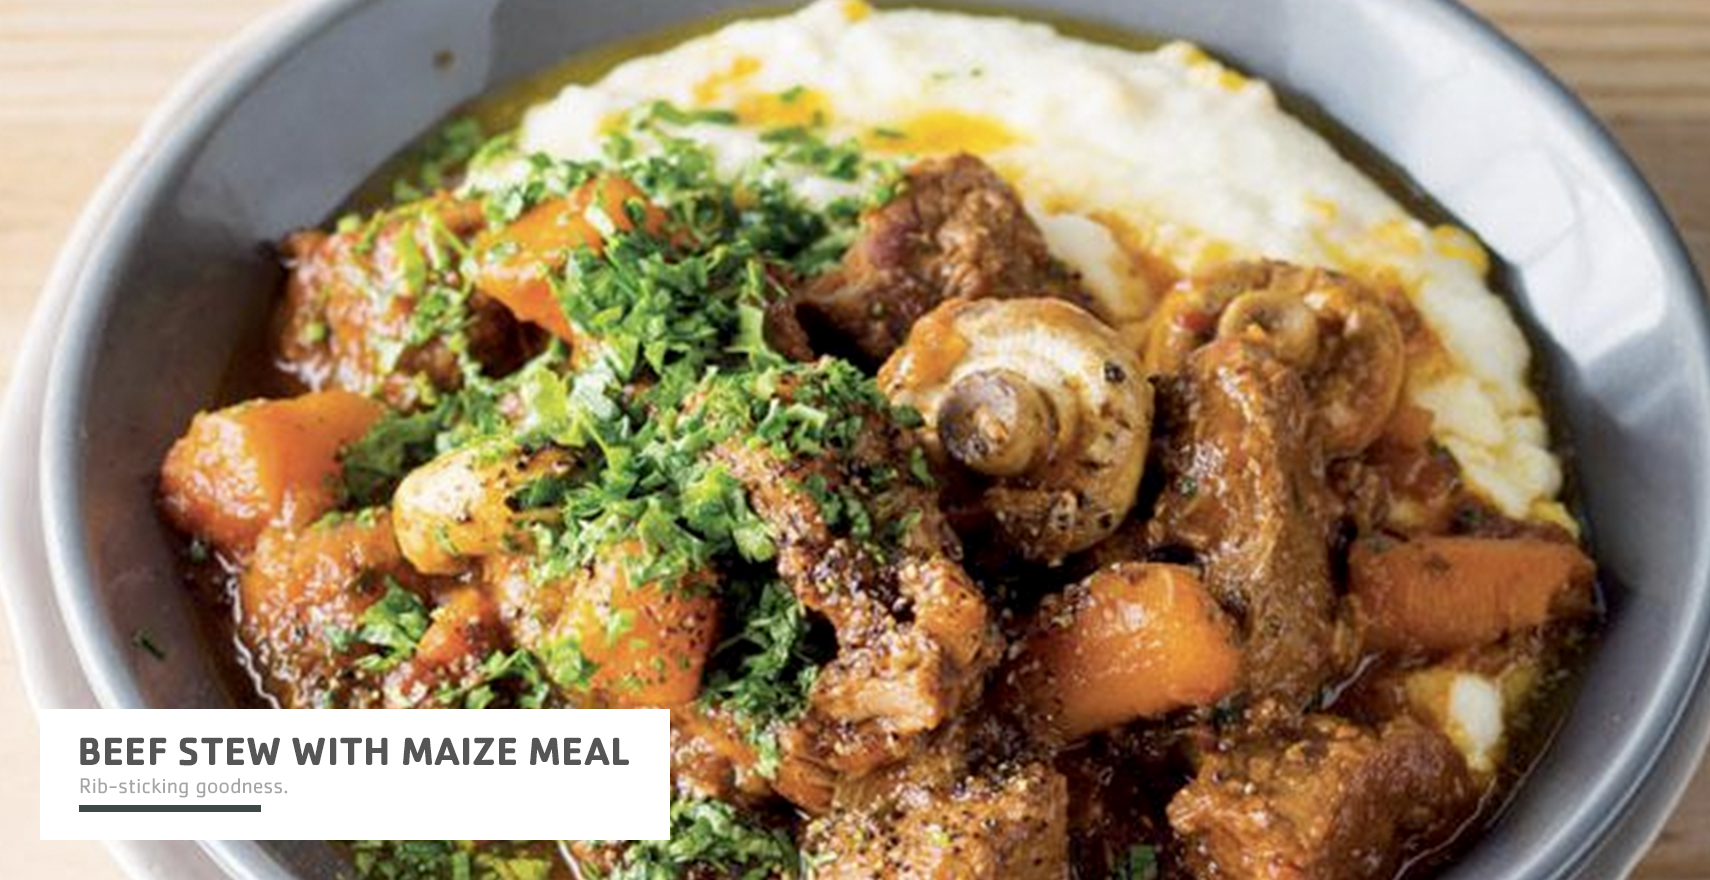 Beef-Stew-with-Maize-Meal.jpg